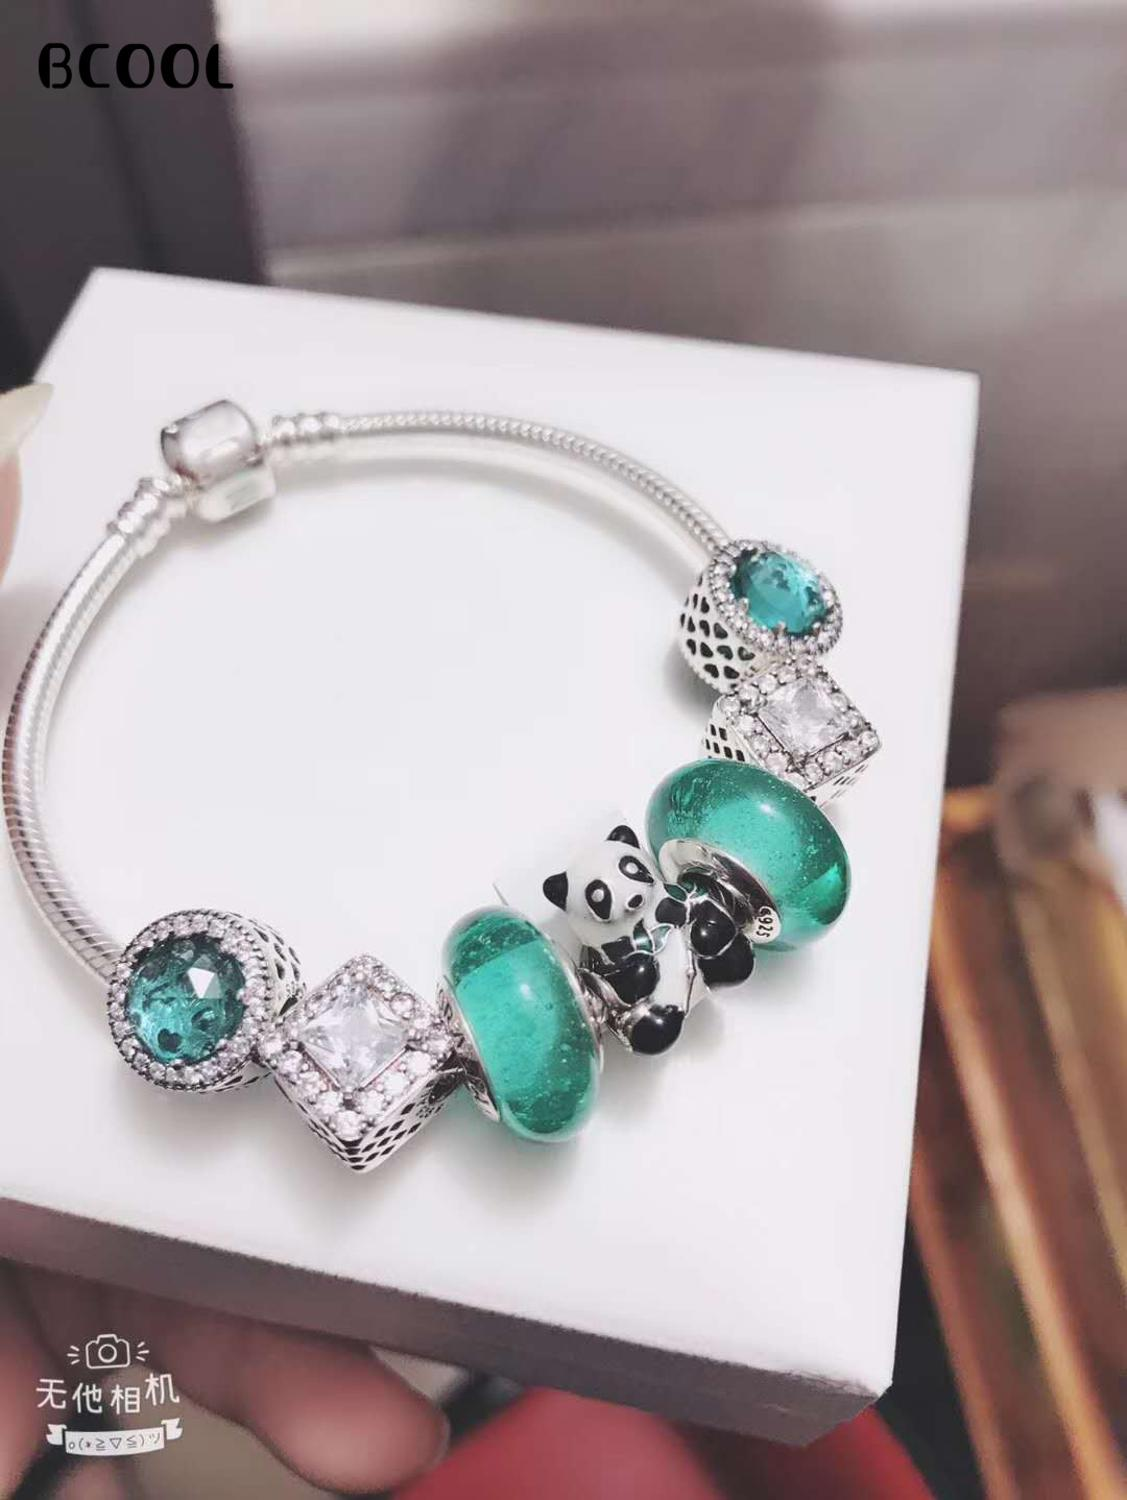 925 Sterling Silver Original 1:1, Fashionable Silver Charm Bracelet, Suitable For Female Panda Crystal Beads Bracelet Jewelry